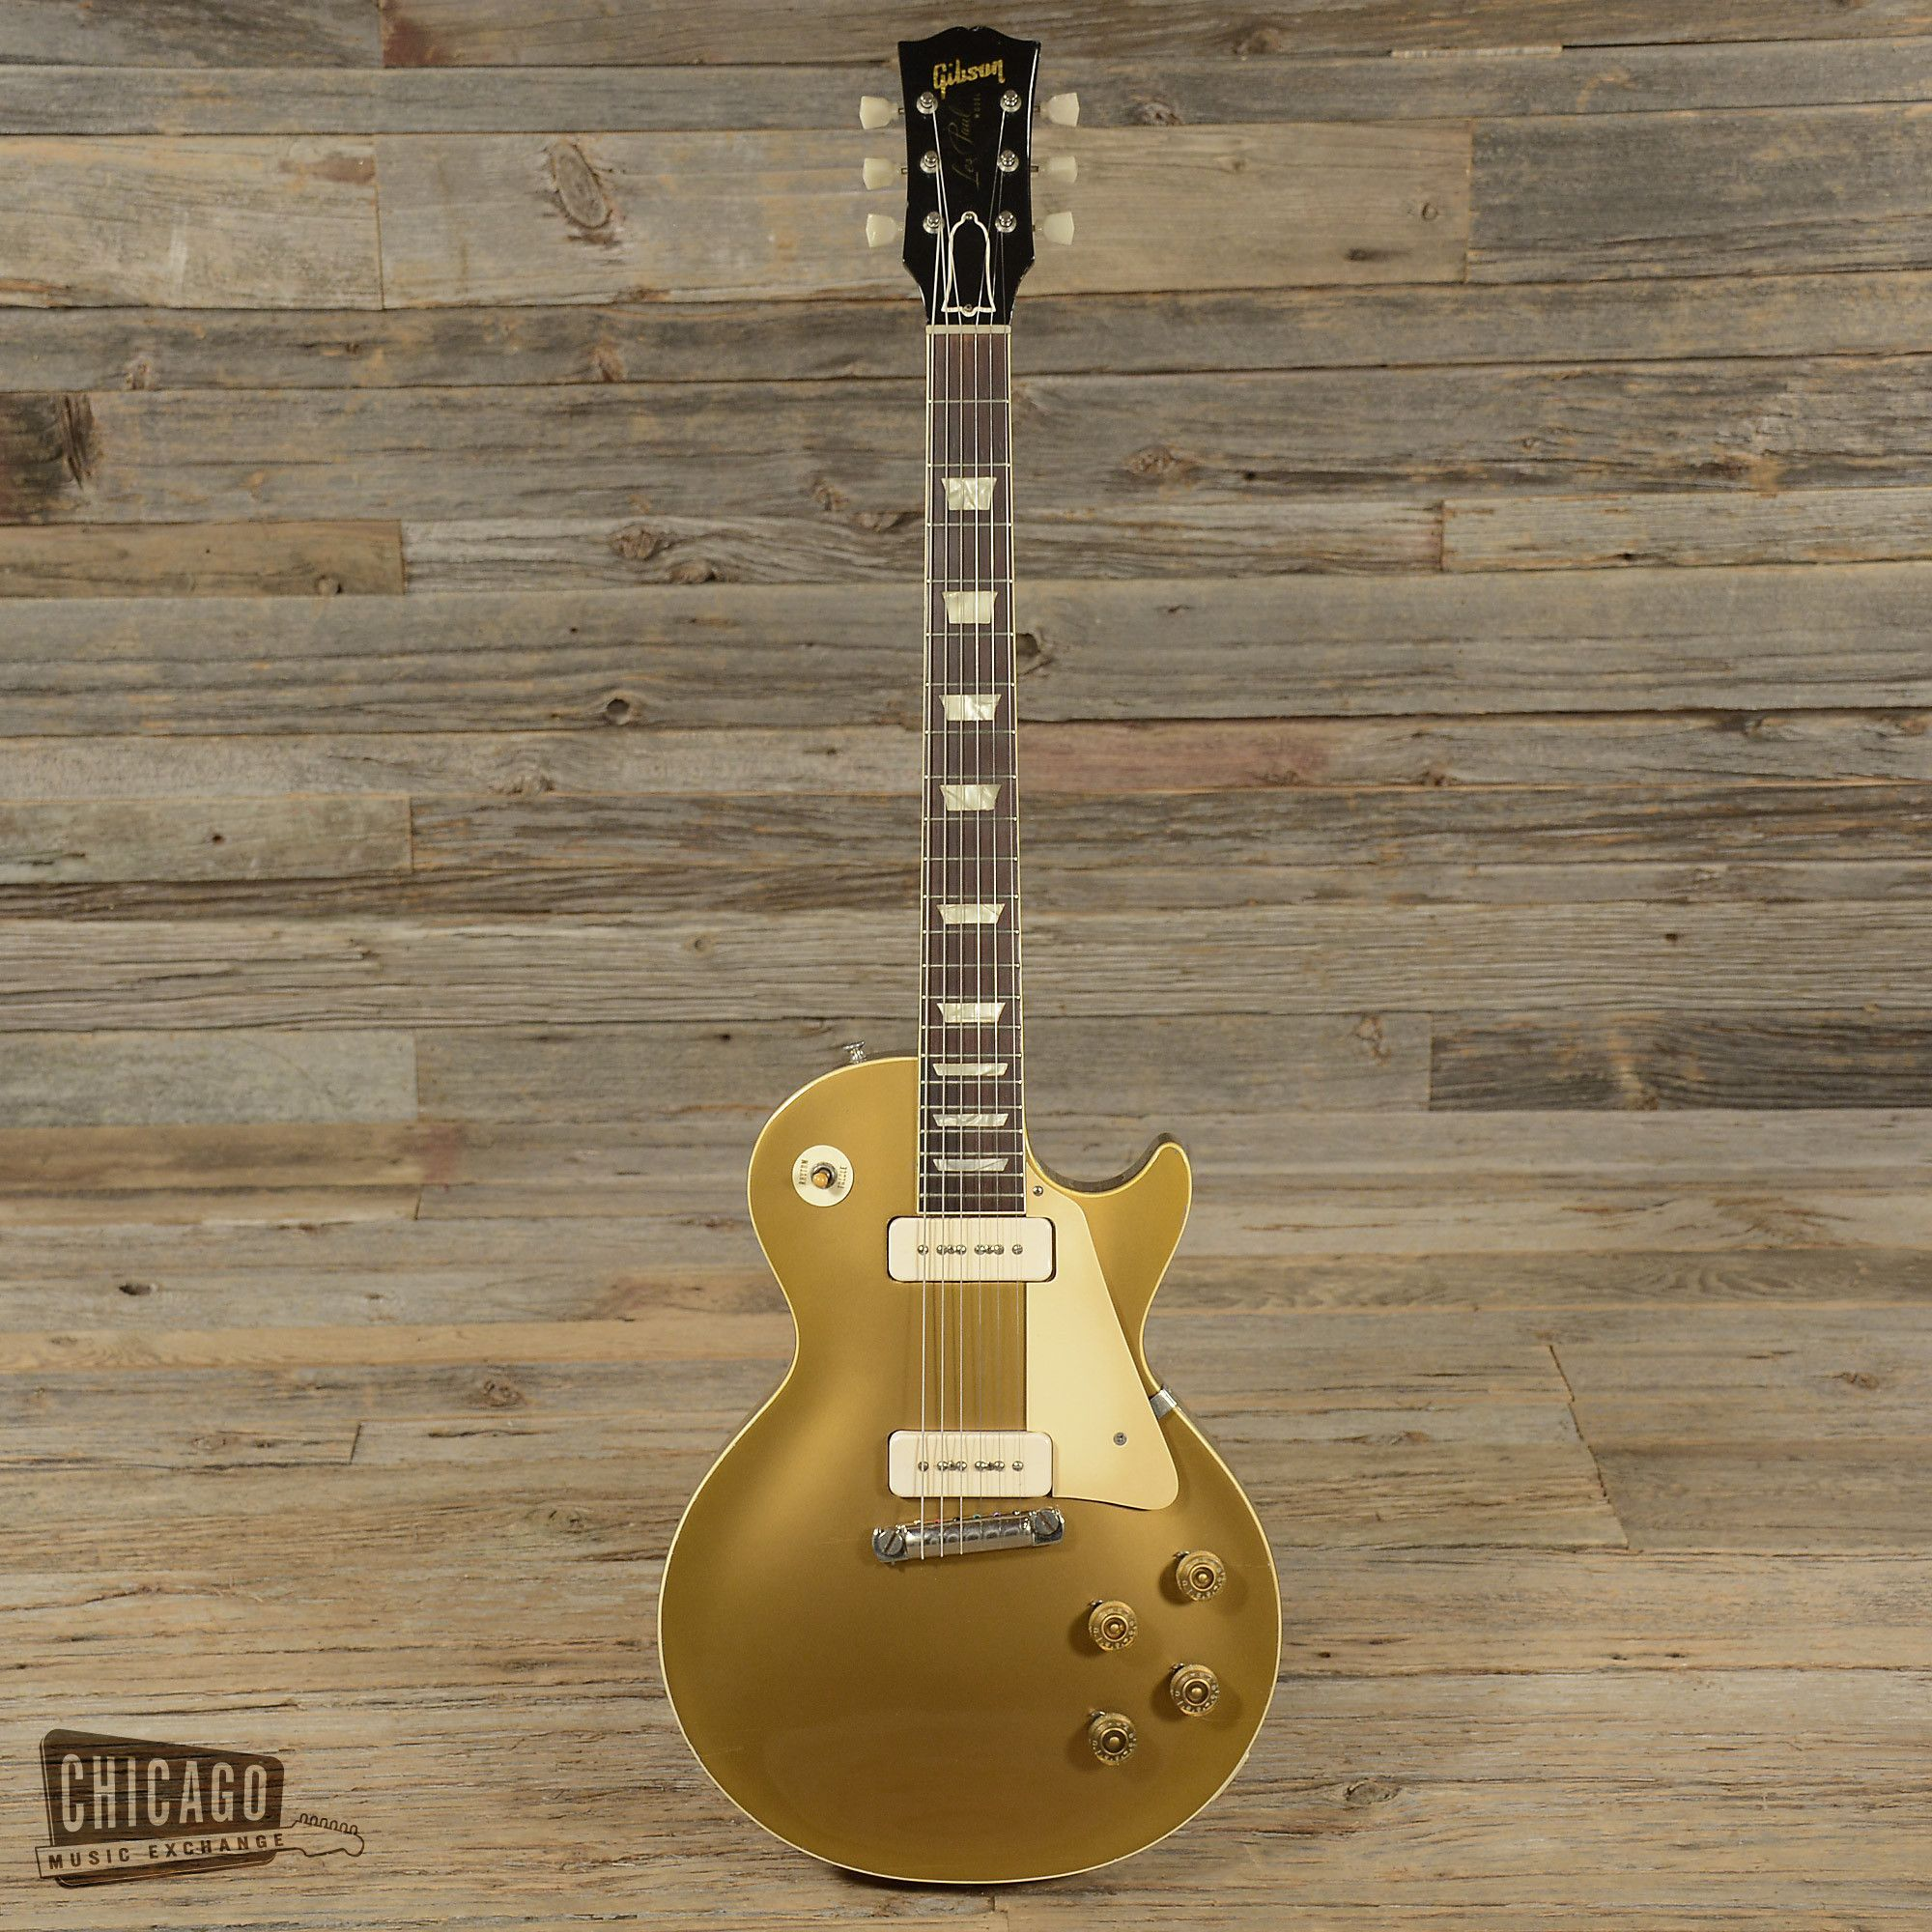 1955 Gibson Les Paul Goldtop from Chicago Music Exchange